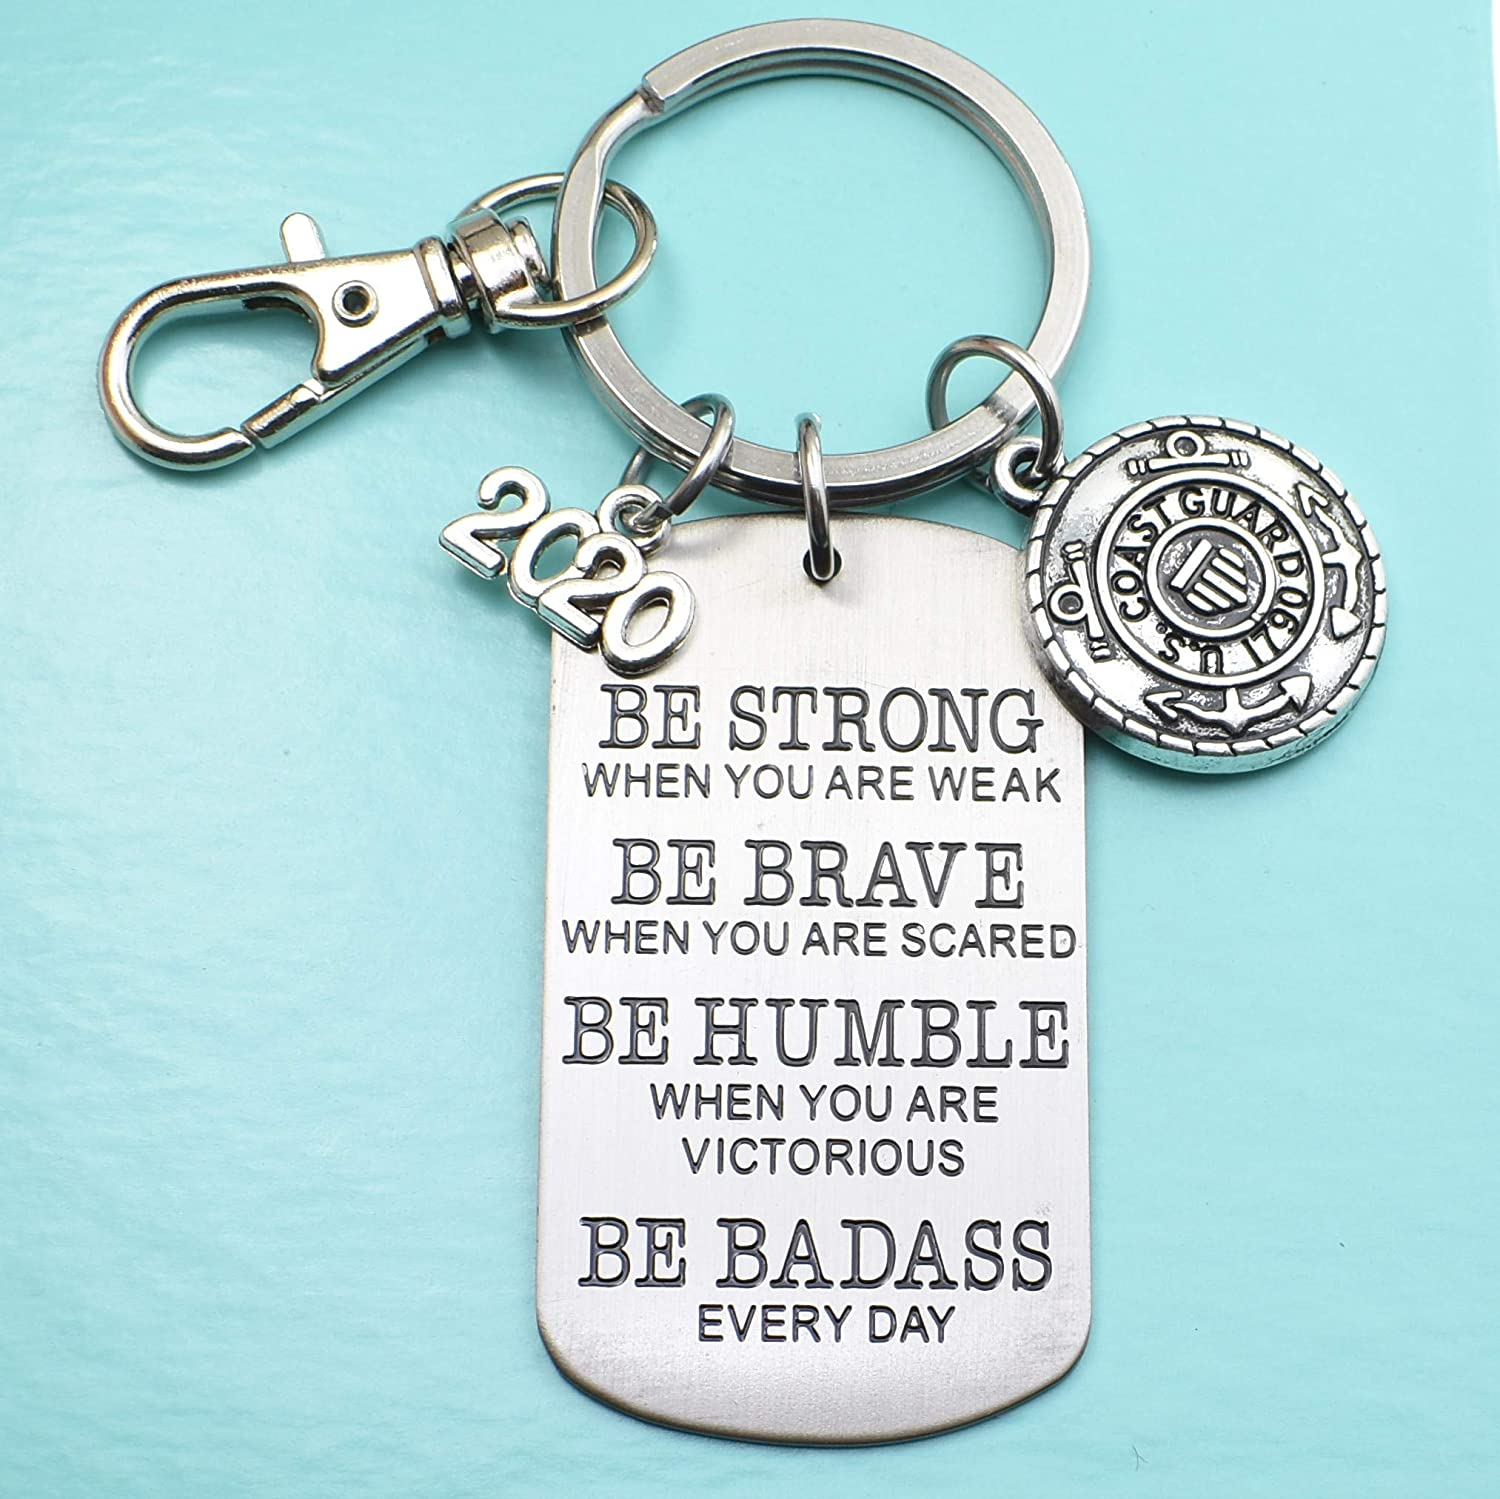 2020 United States Coast Guard Keychain. Be Strong, Be Brave, Be Humble, Be Badass Everyday. 2020 Coast Guard Recruit. USA Key Chain.